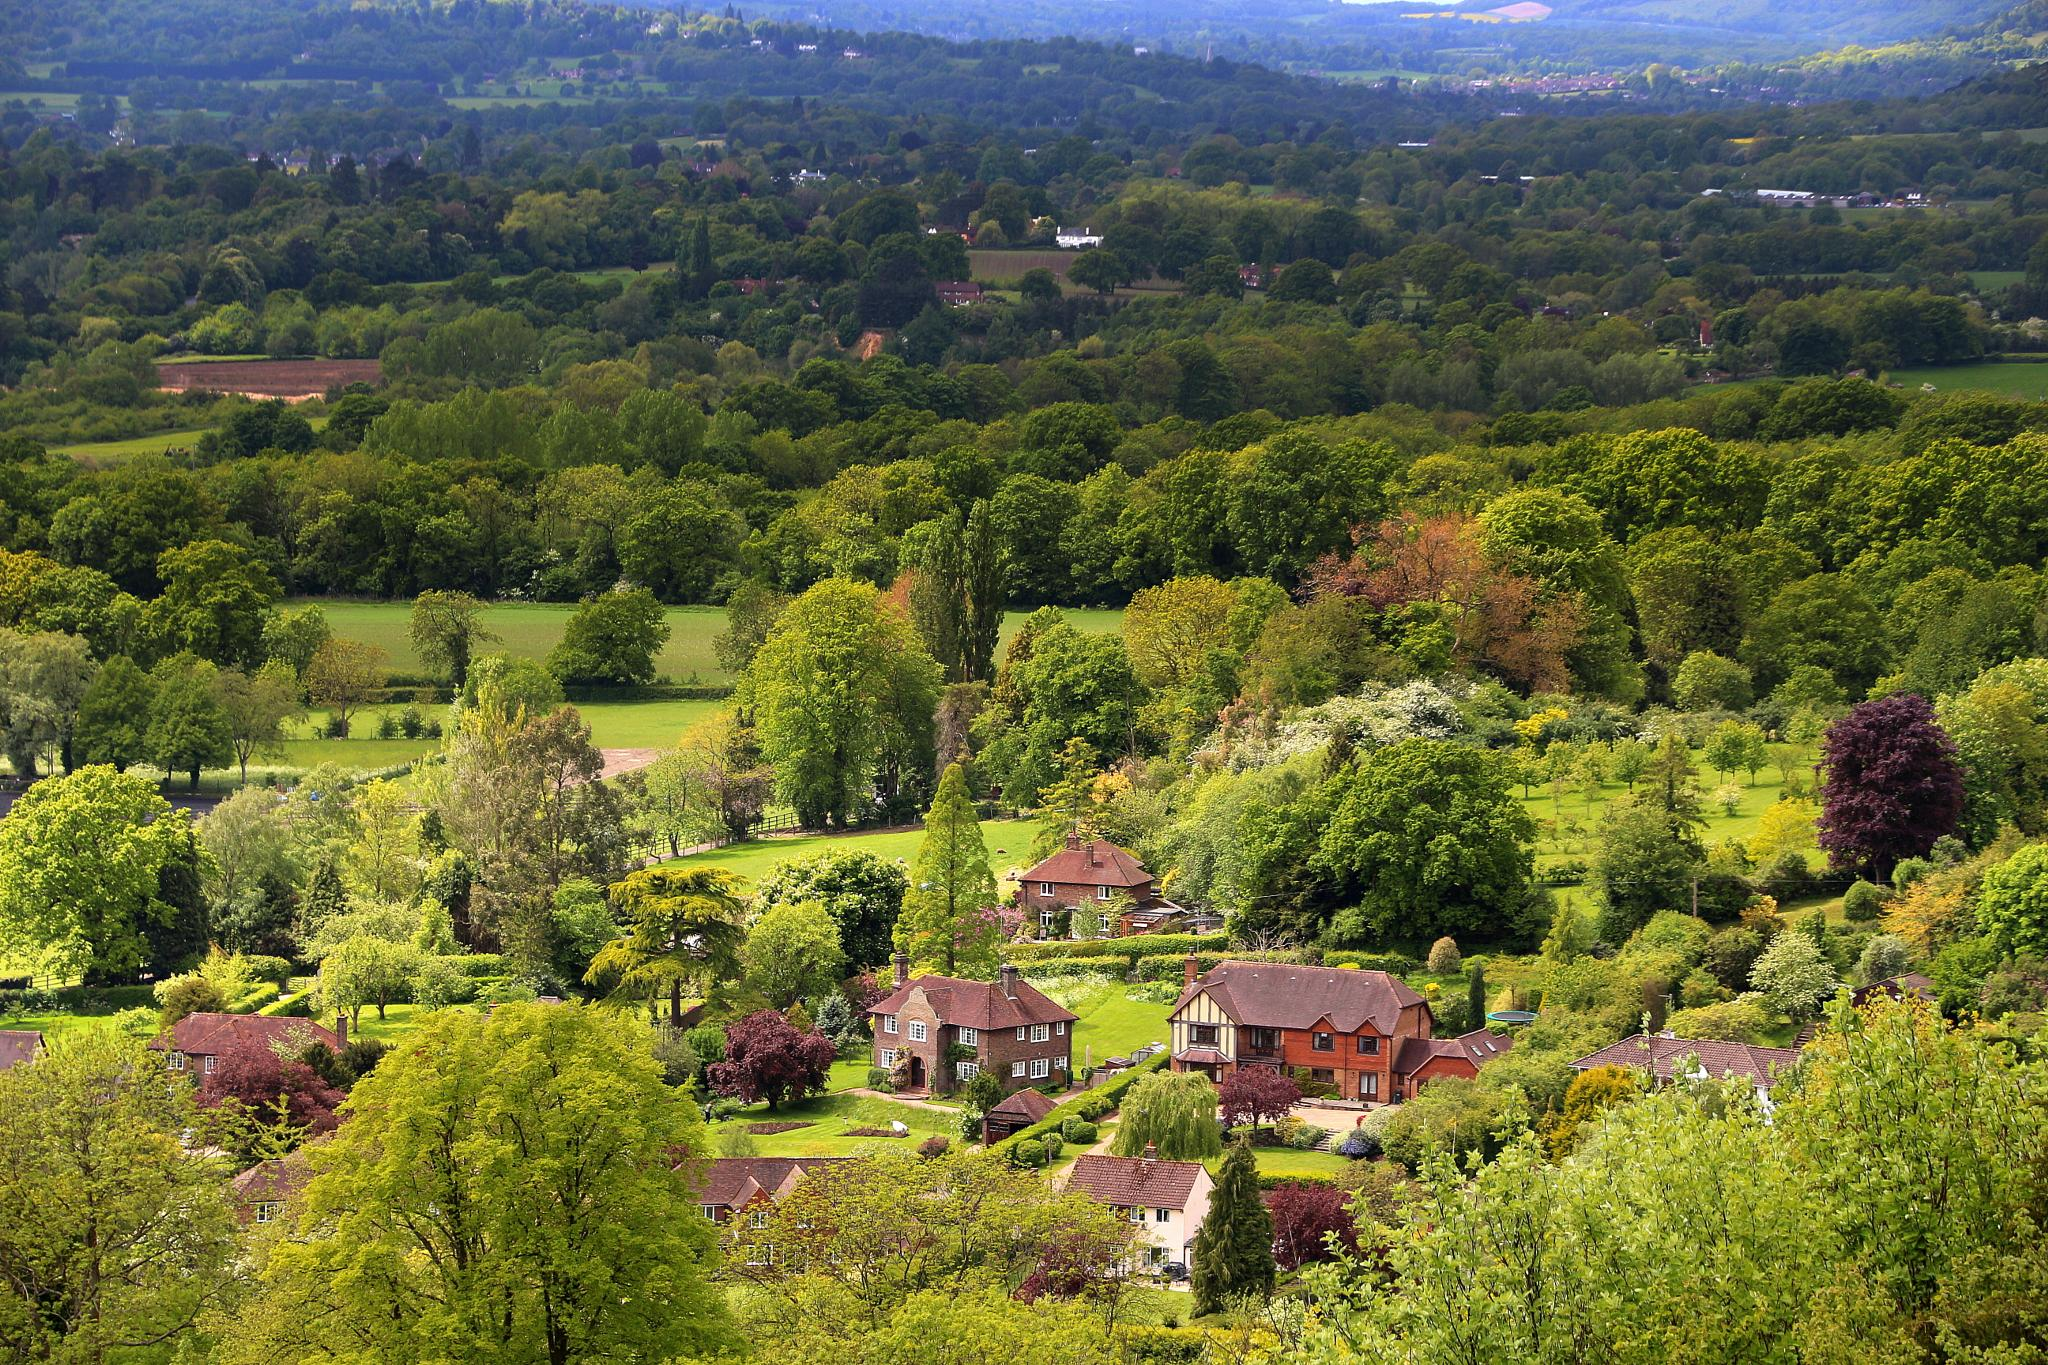 'England's Green and Pleasant Land...' by Jon Franks